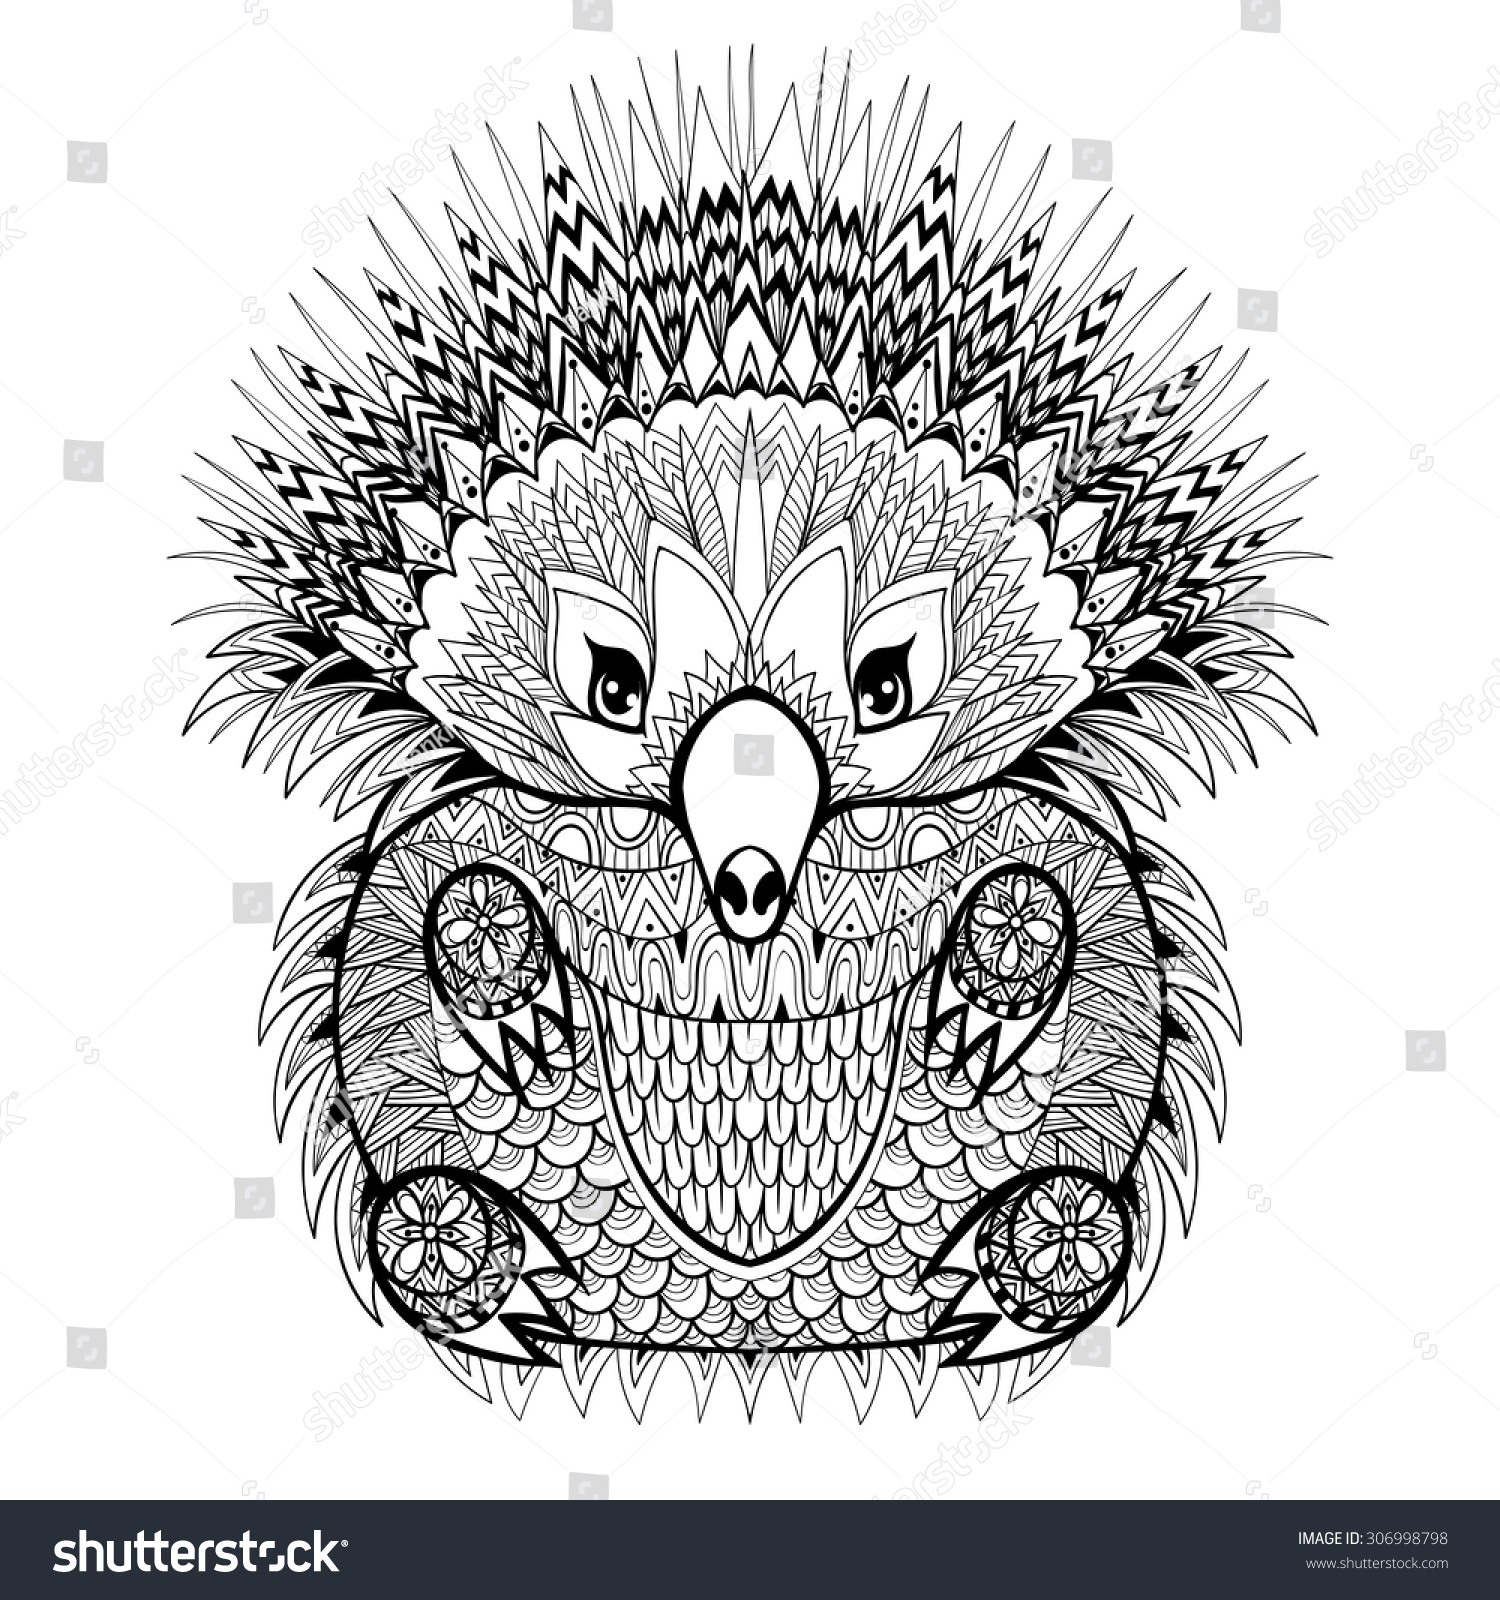 tribal animal coloring pages - photo#34